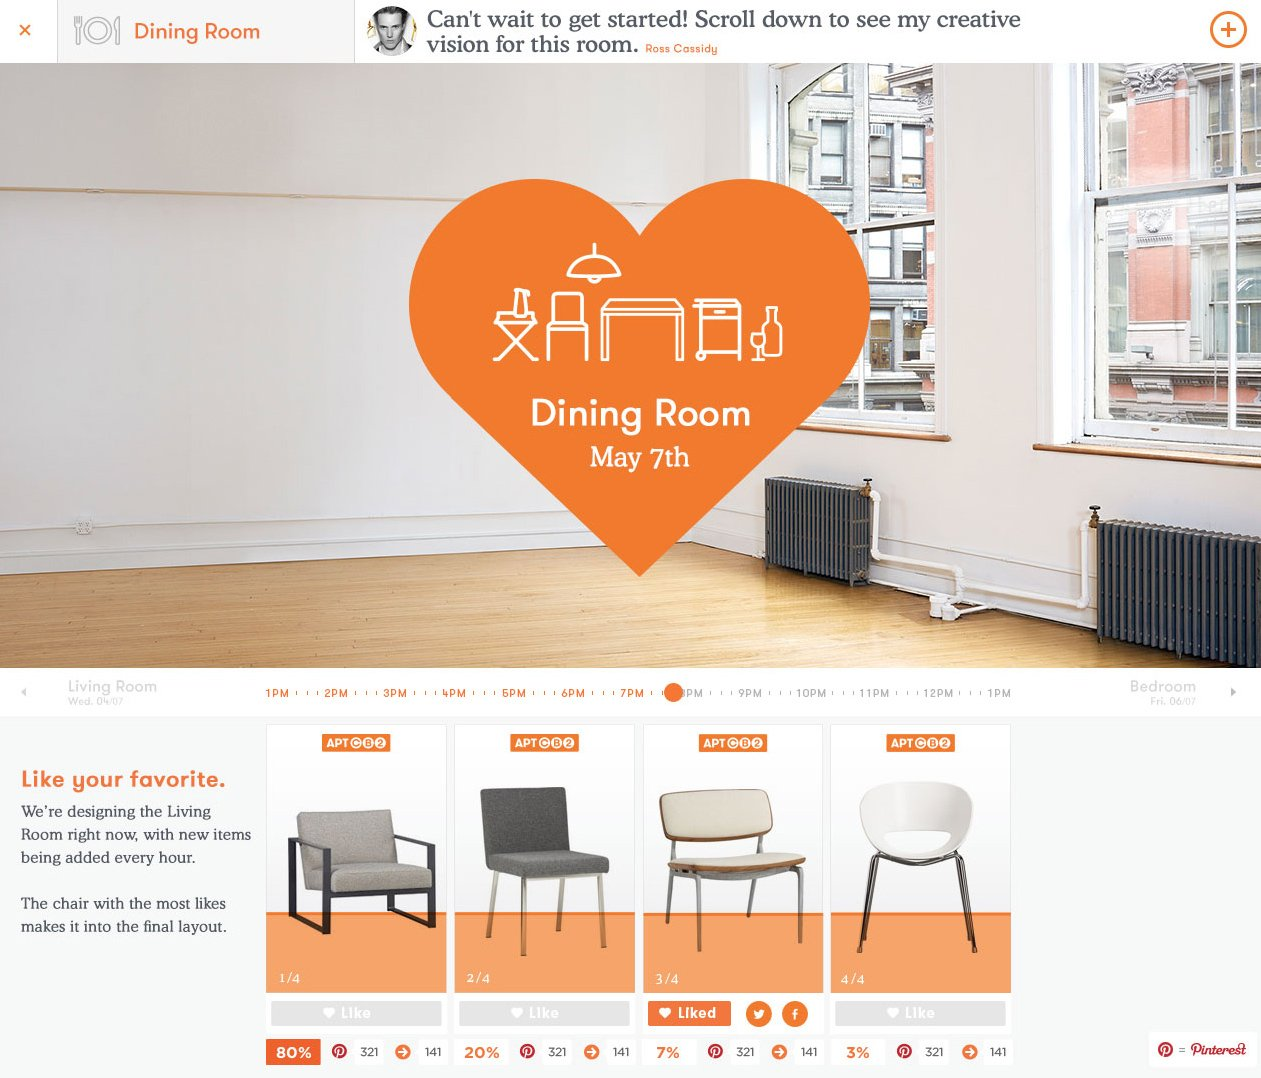 cb2-invites-pinterest-users-to-design-an-apartment-in-real-time[2]